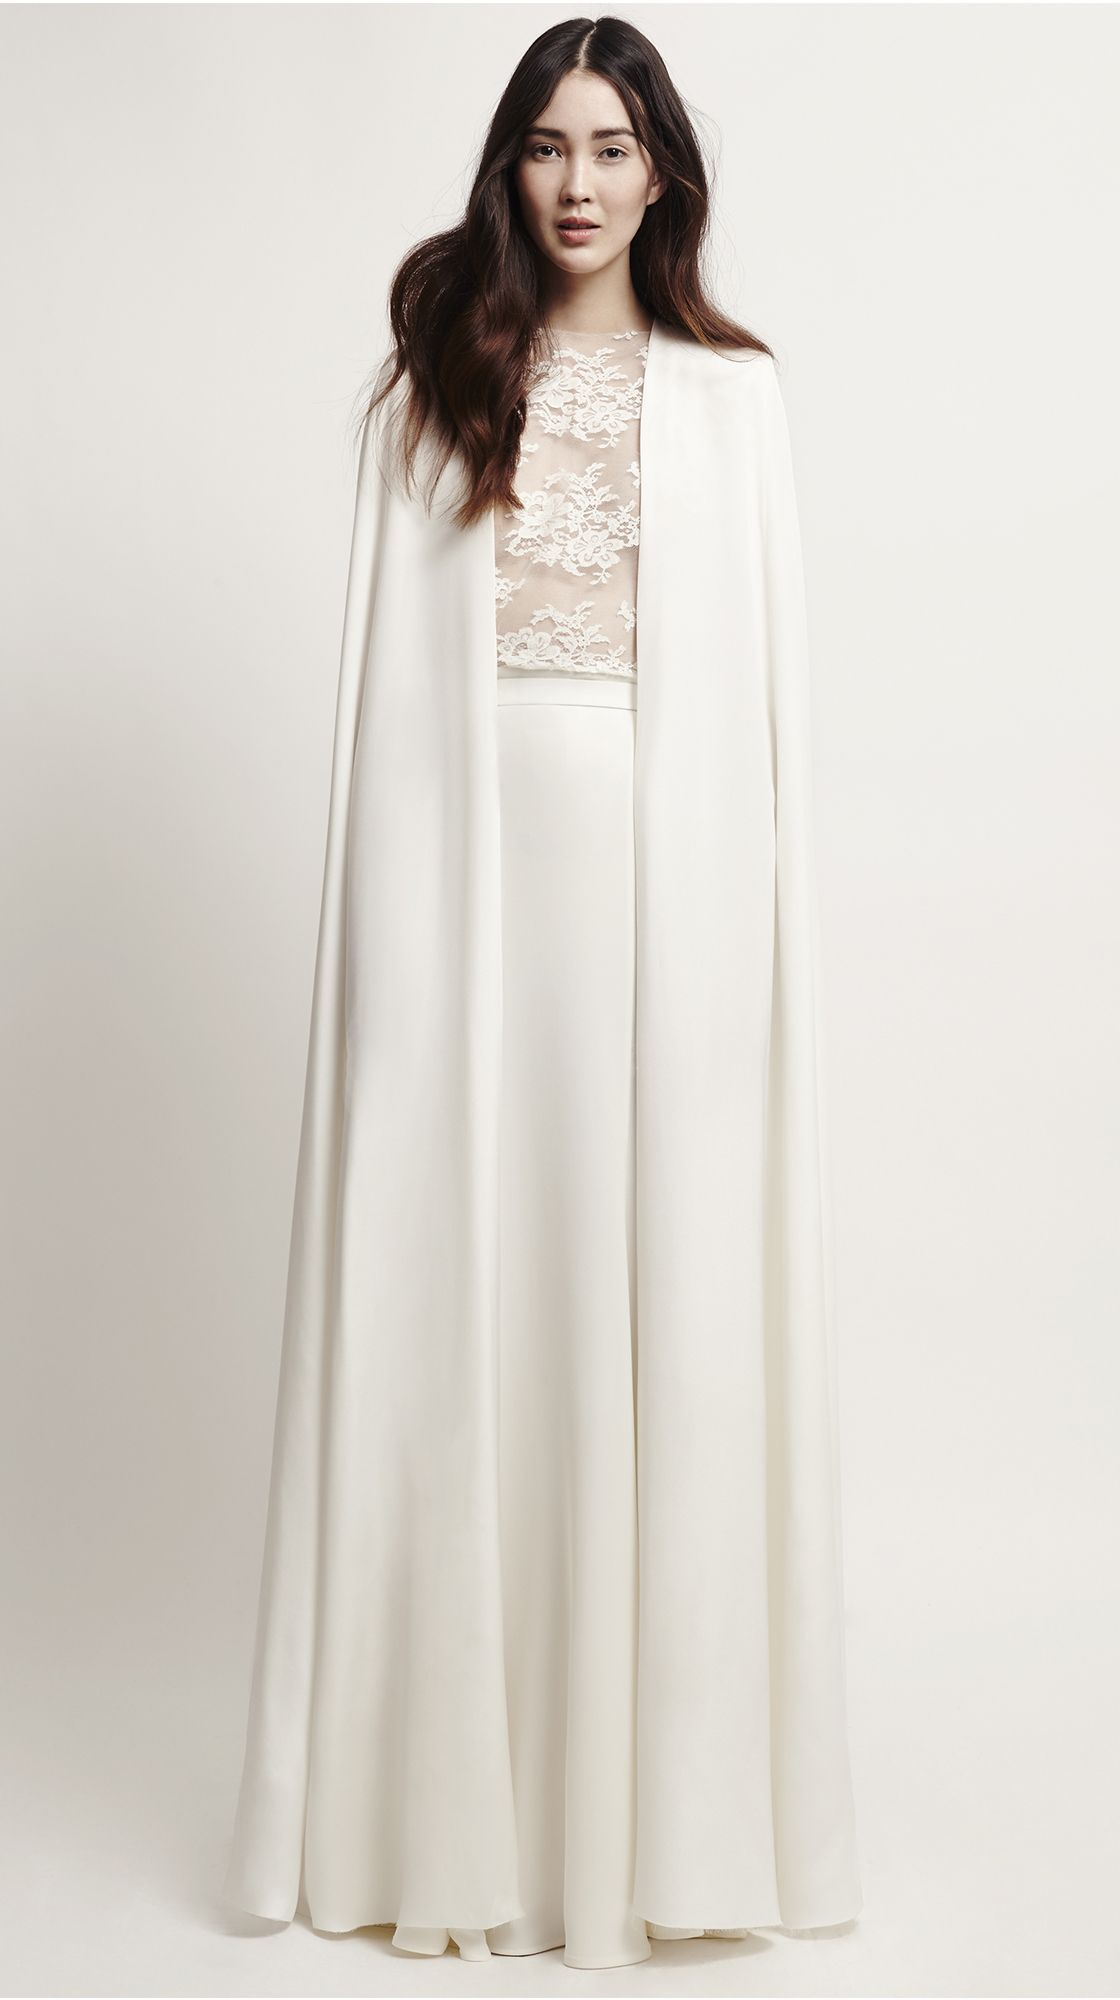 Lace dress with cape  Blanchett CapeVictory Skirt  Brautkleid  wedding dress